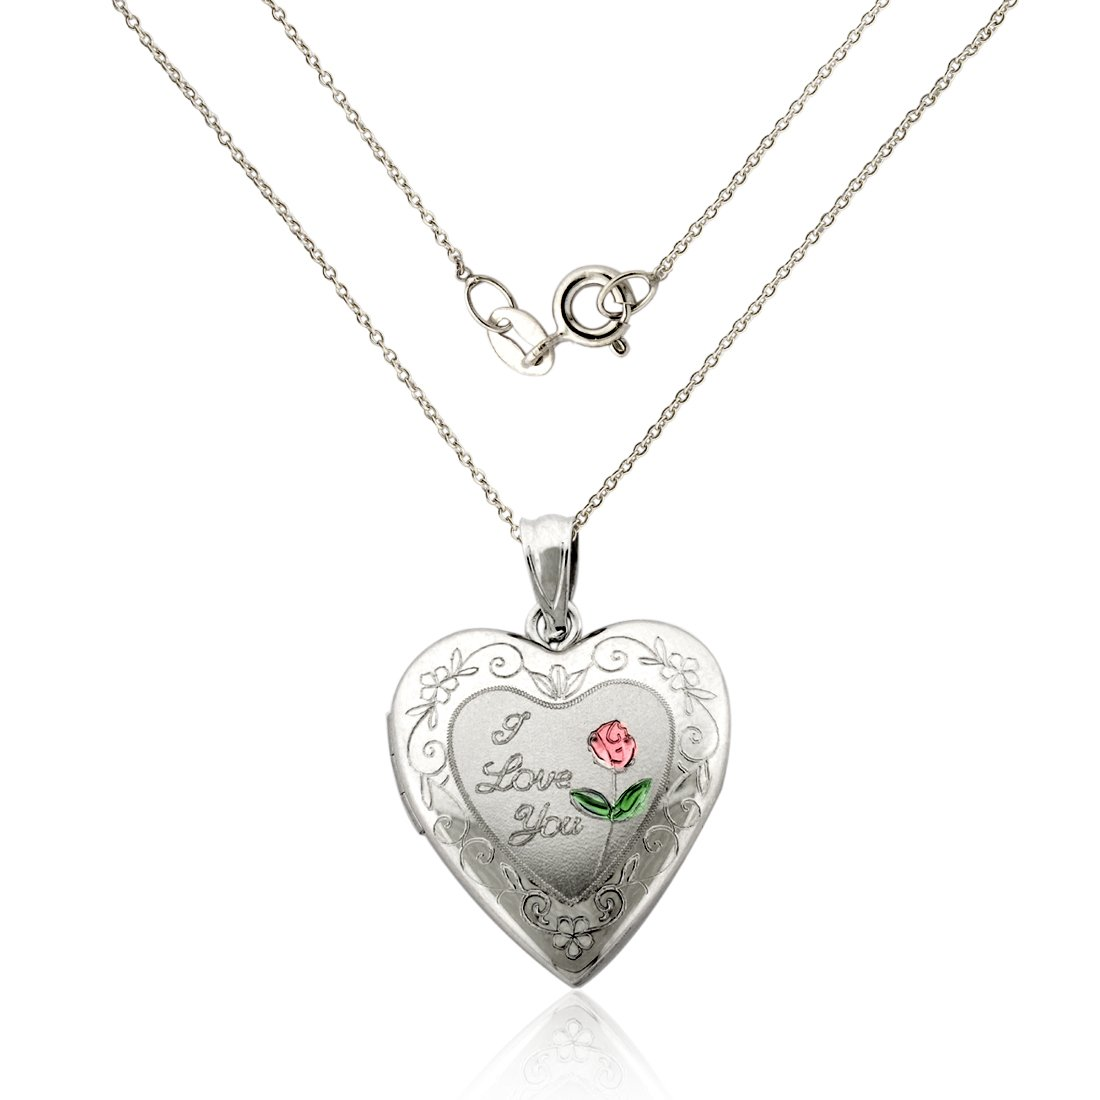 925 Sterling Silver ''I LOVE YOU'' Heart Locket Necklace with pink engraved Flower/18'' chain